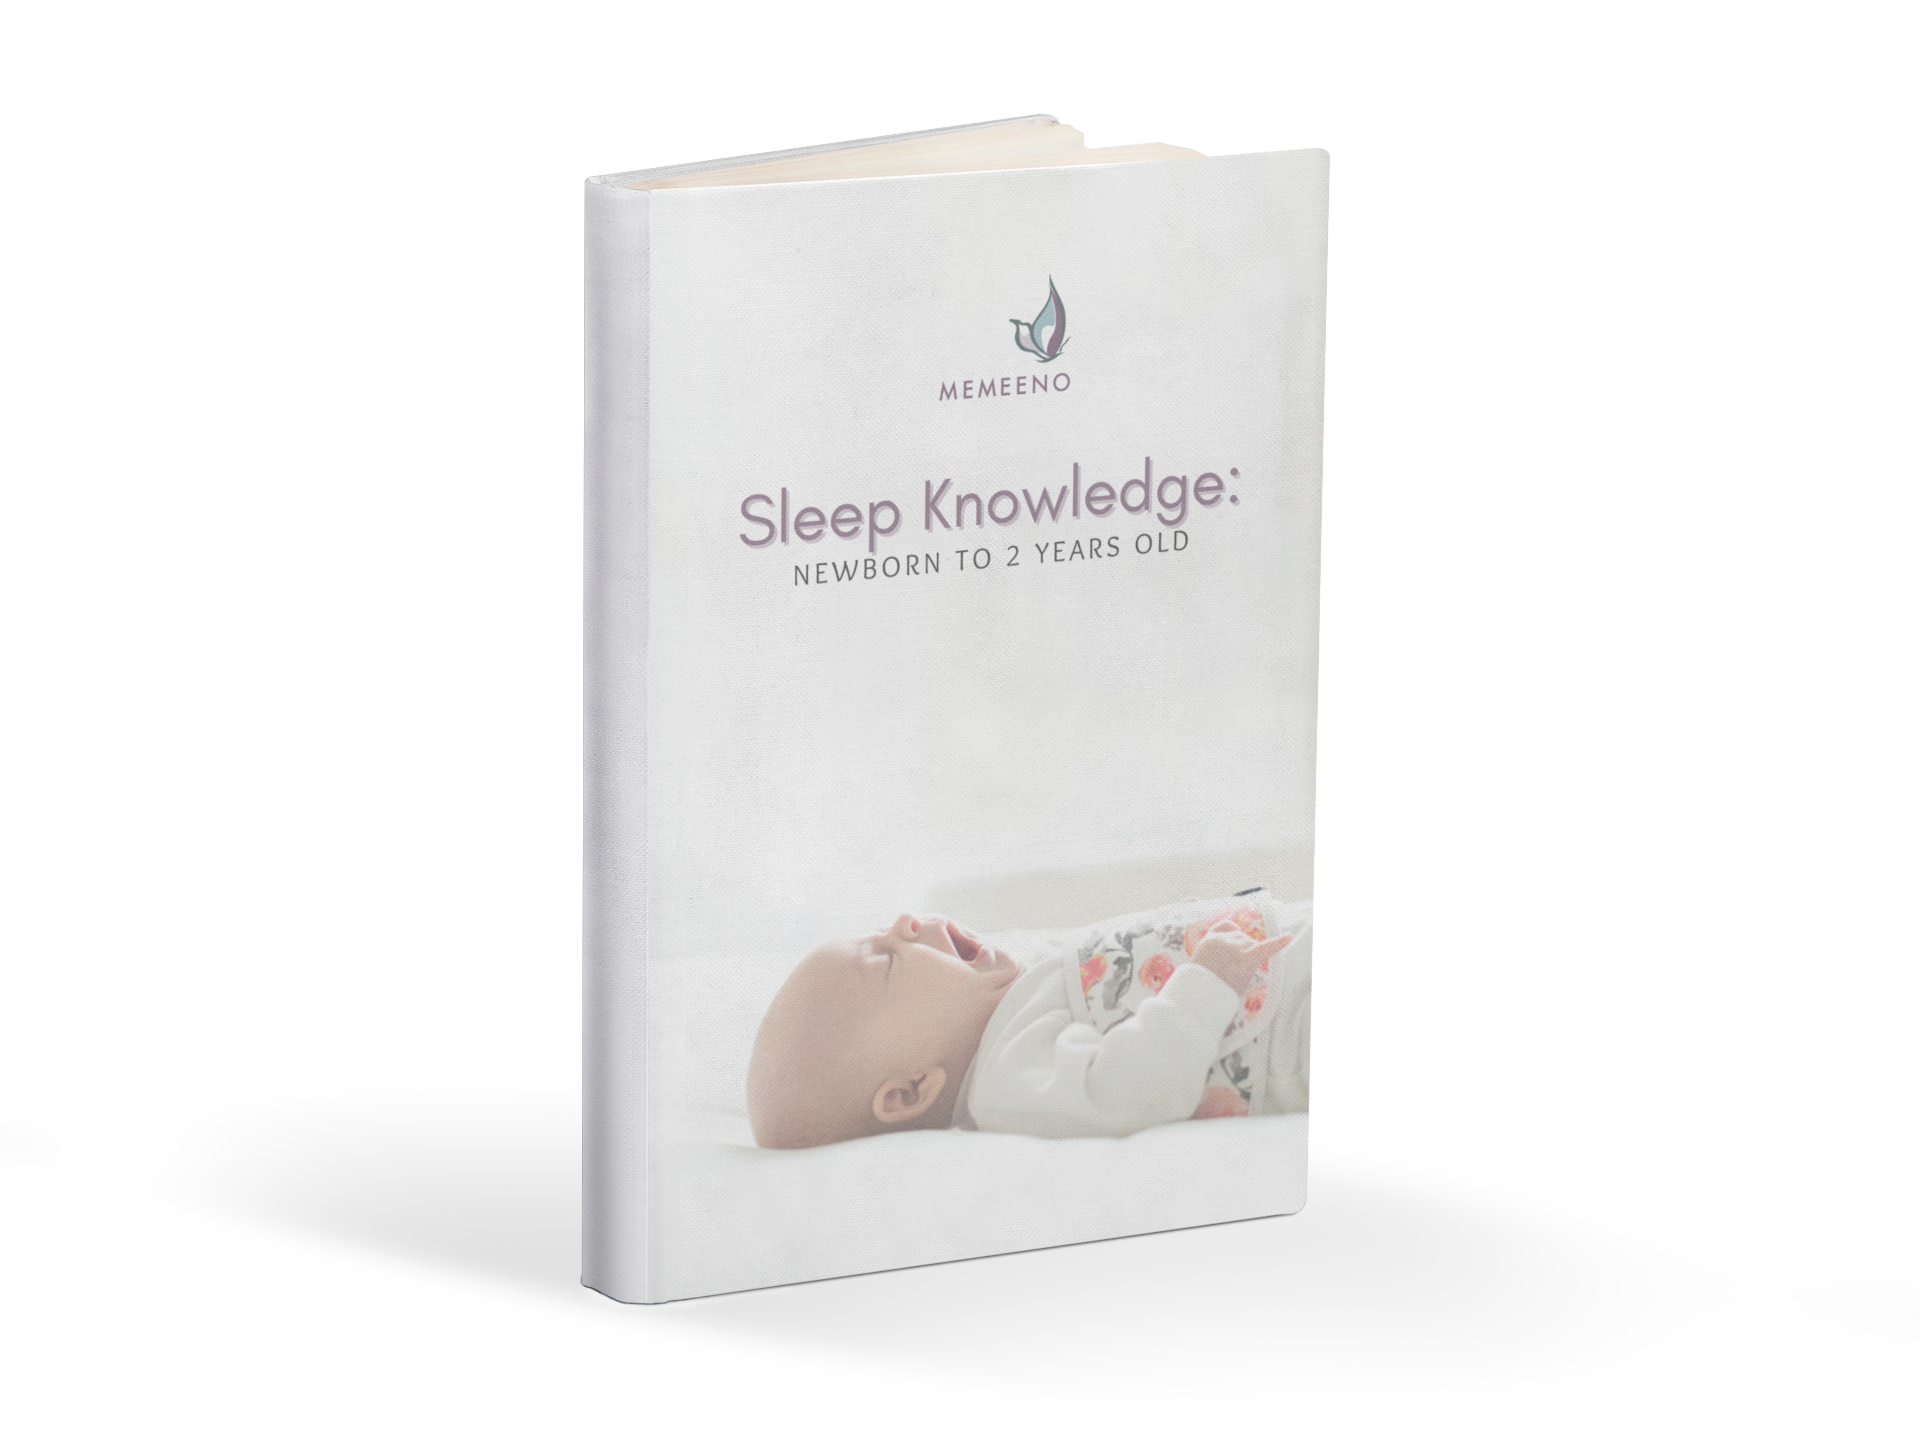 MEMEENO downloadable ebook Sleep Knowledge newborn to 2 years old